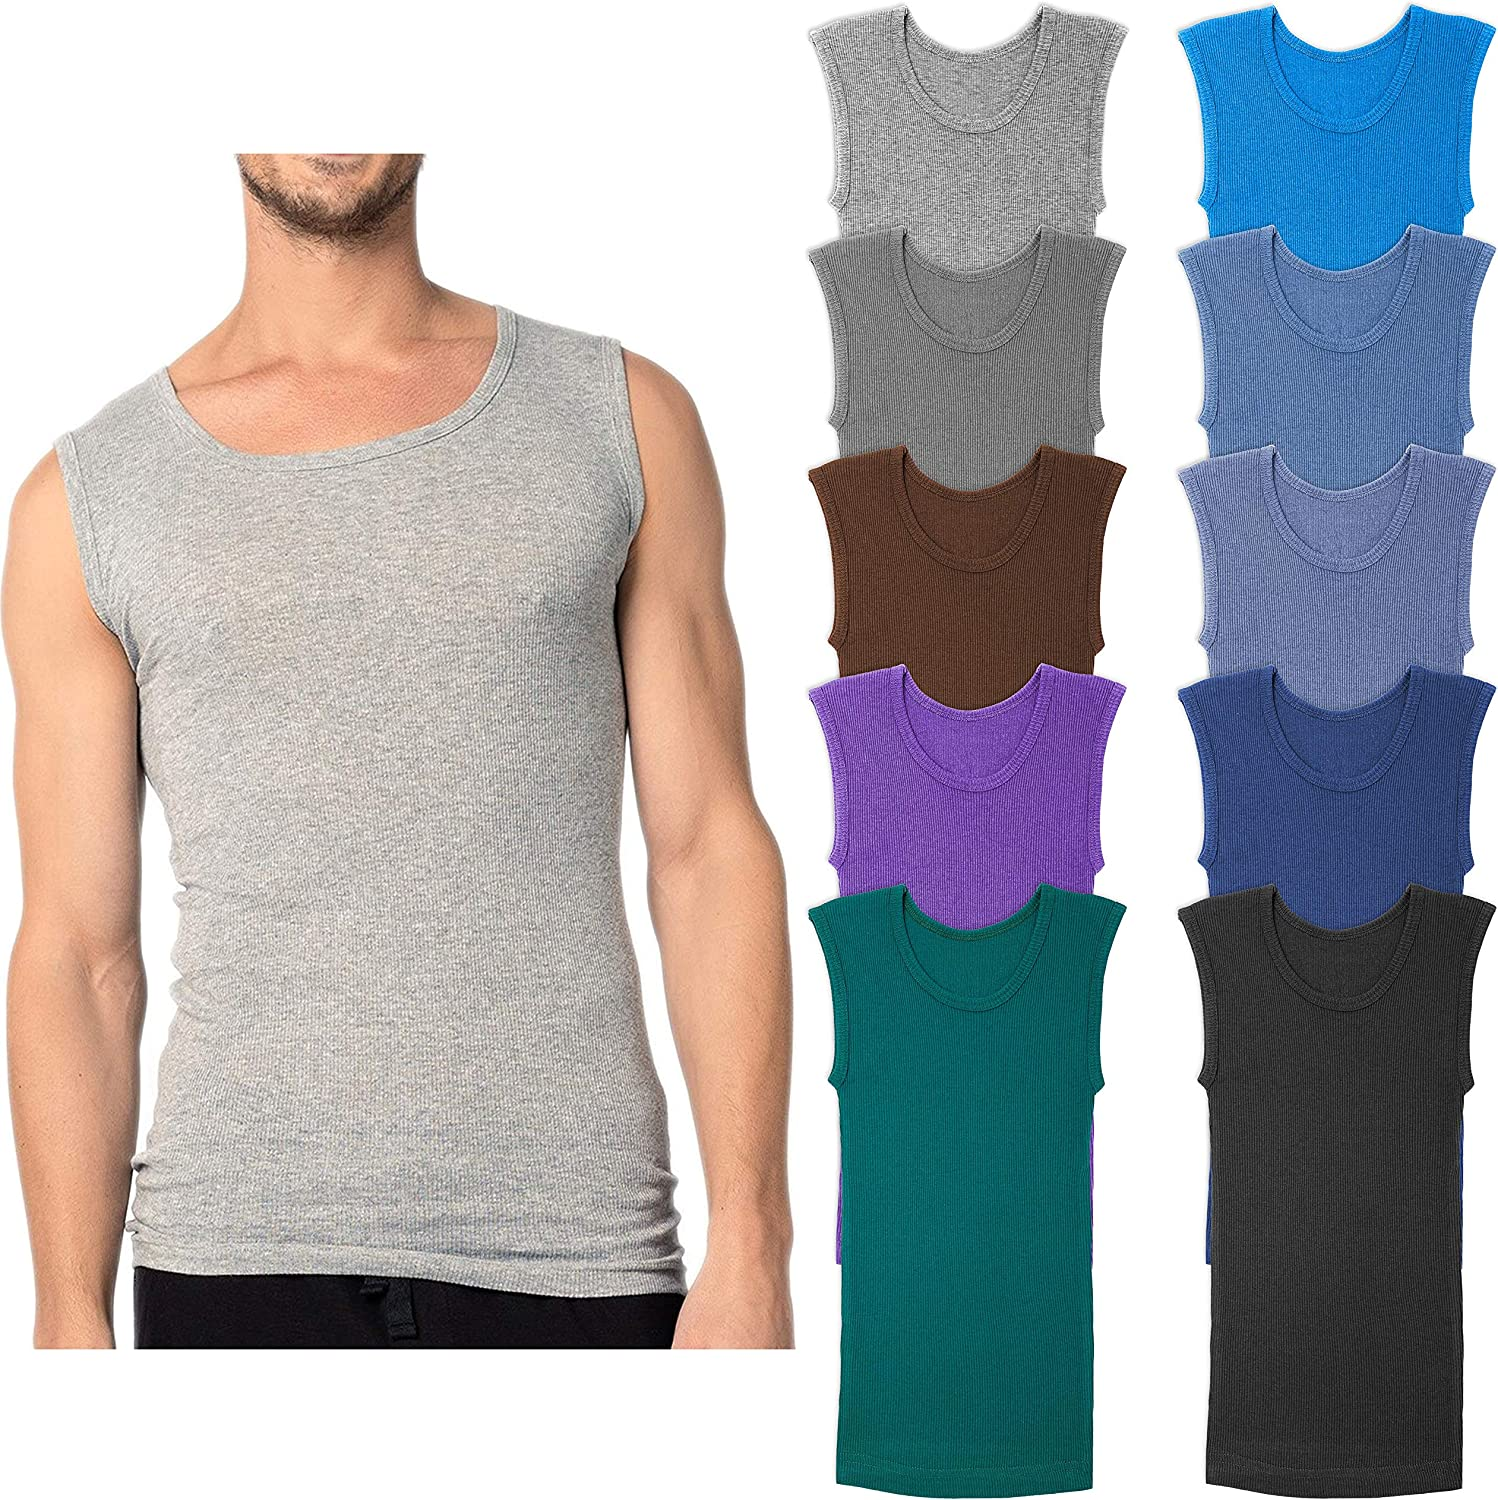 Andrew Scott Men's 10-Pack online shop Color Tanks Crew Sleeveless Sales of SALE items from new works Muscle